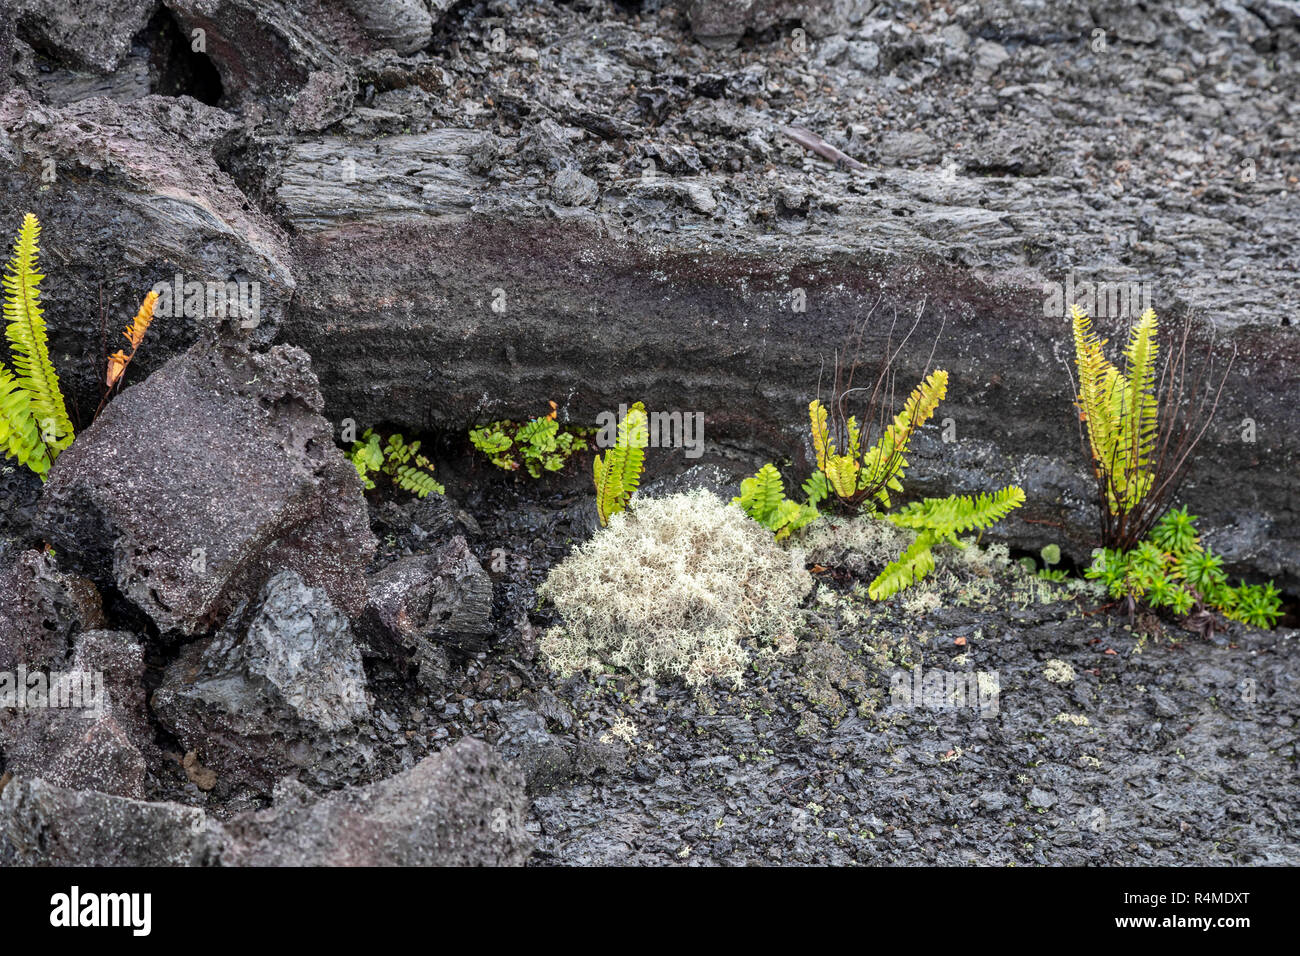 Hawaii Volcanoes National Park, Hawaii - Plants growing on an old lava flow from the Kilauea volcano. - Stock Image